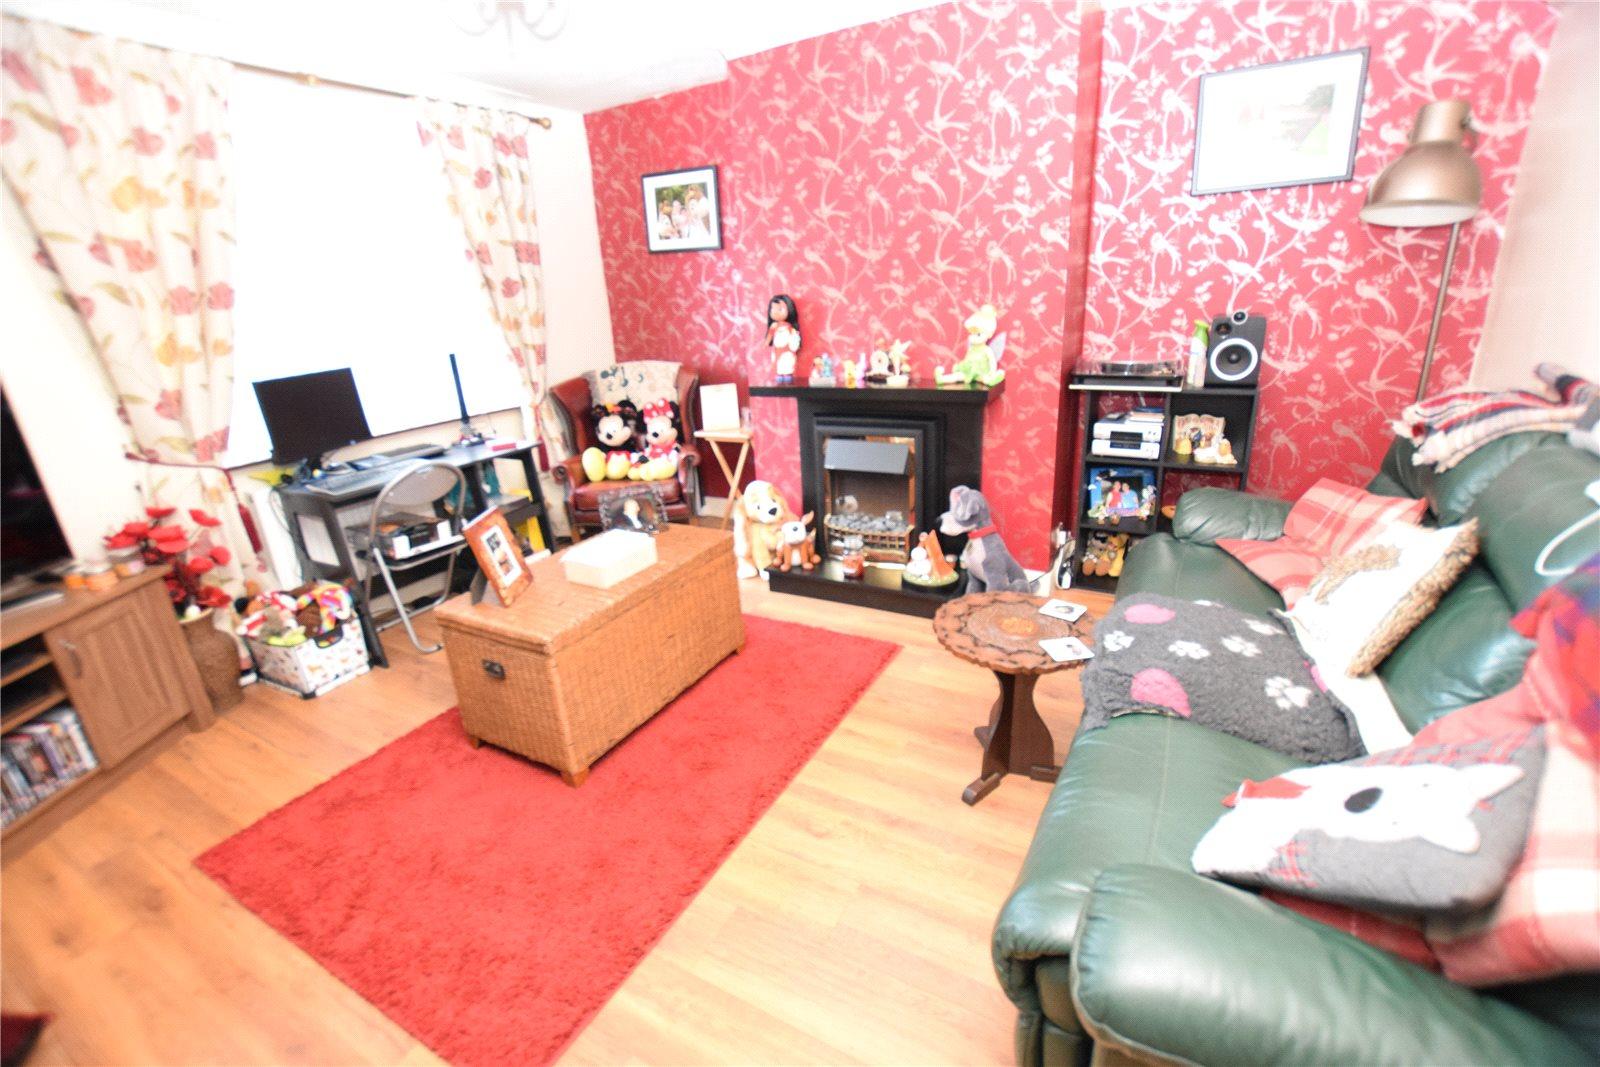 Property for sale in Armely, interior reception room